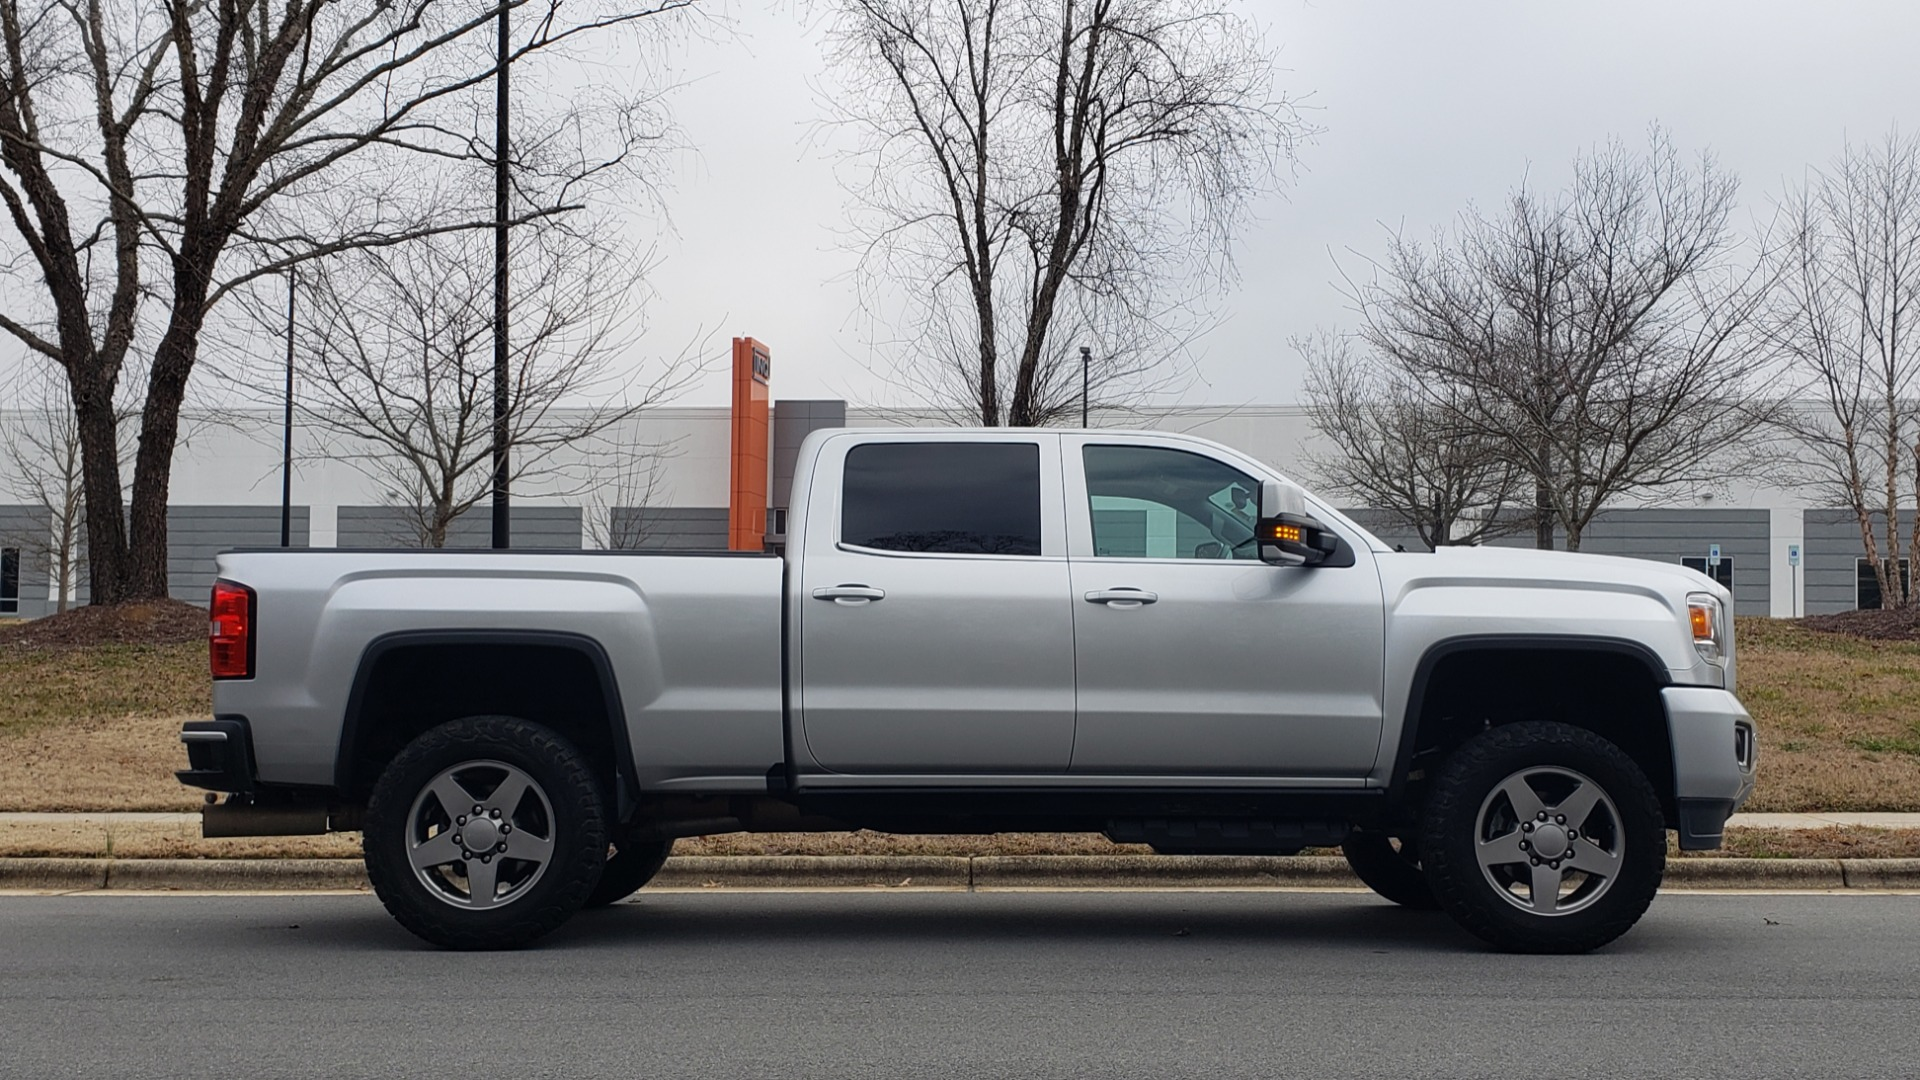 Used 2018 GMC SIERRA 2500HD DENALI 4X4 CREWCAB / 6.6L DURAMAX PLUS / NAV / SUNROOF / REARVIEW for sale $61,999 at Formula Imports in Charlotte NC 28227 6